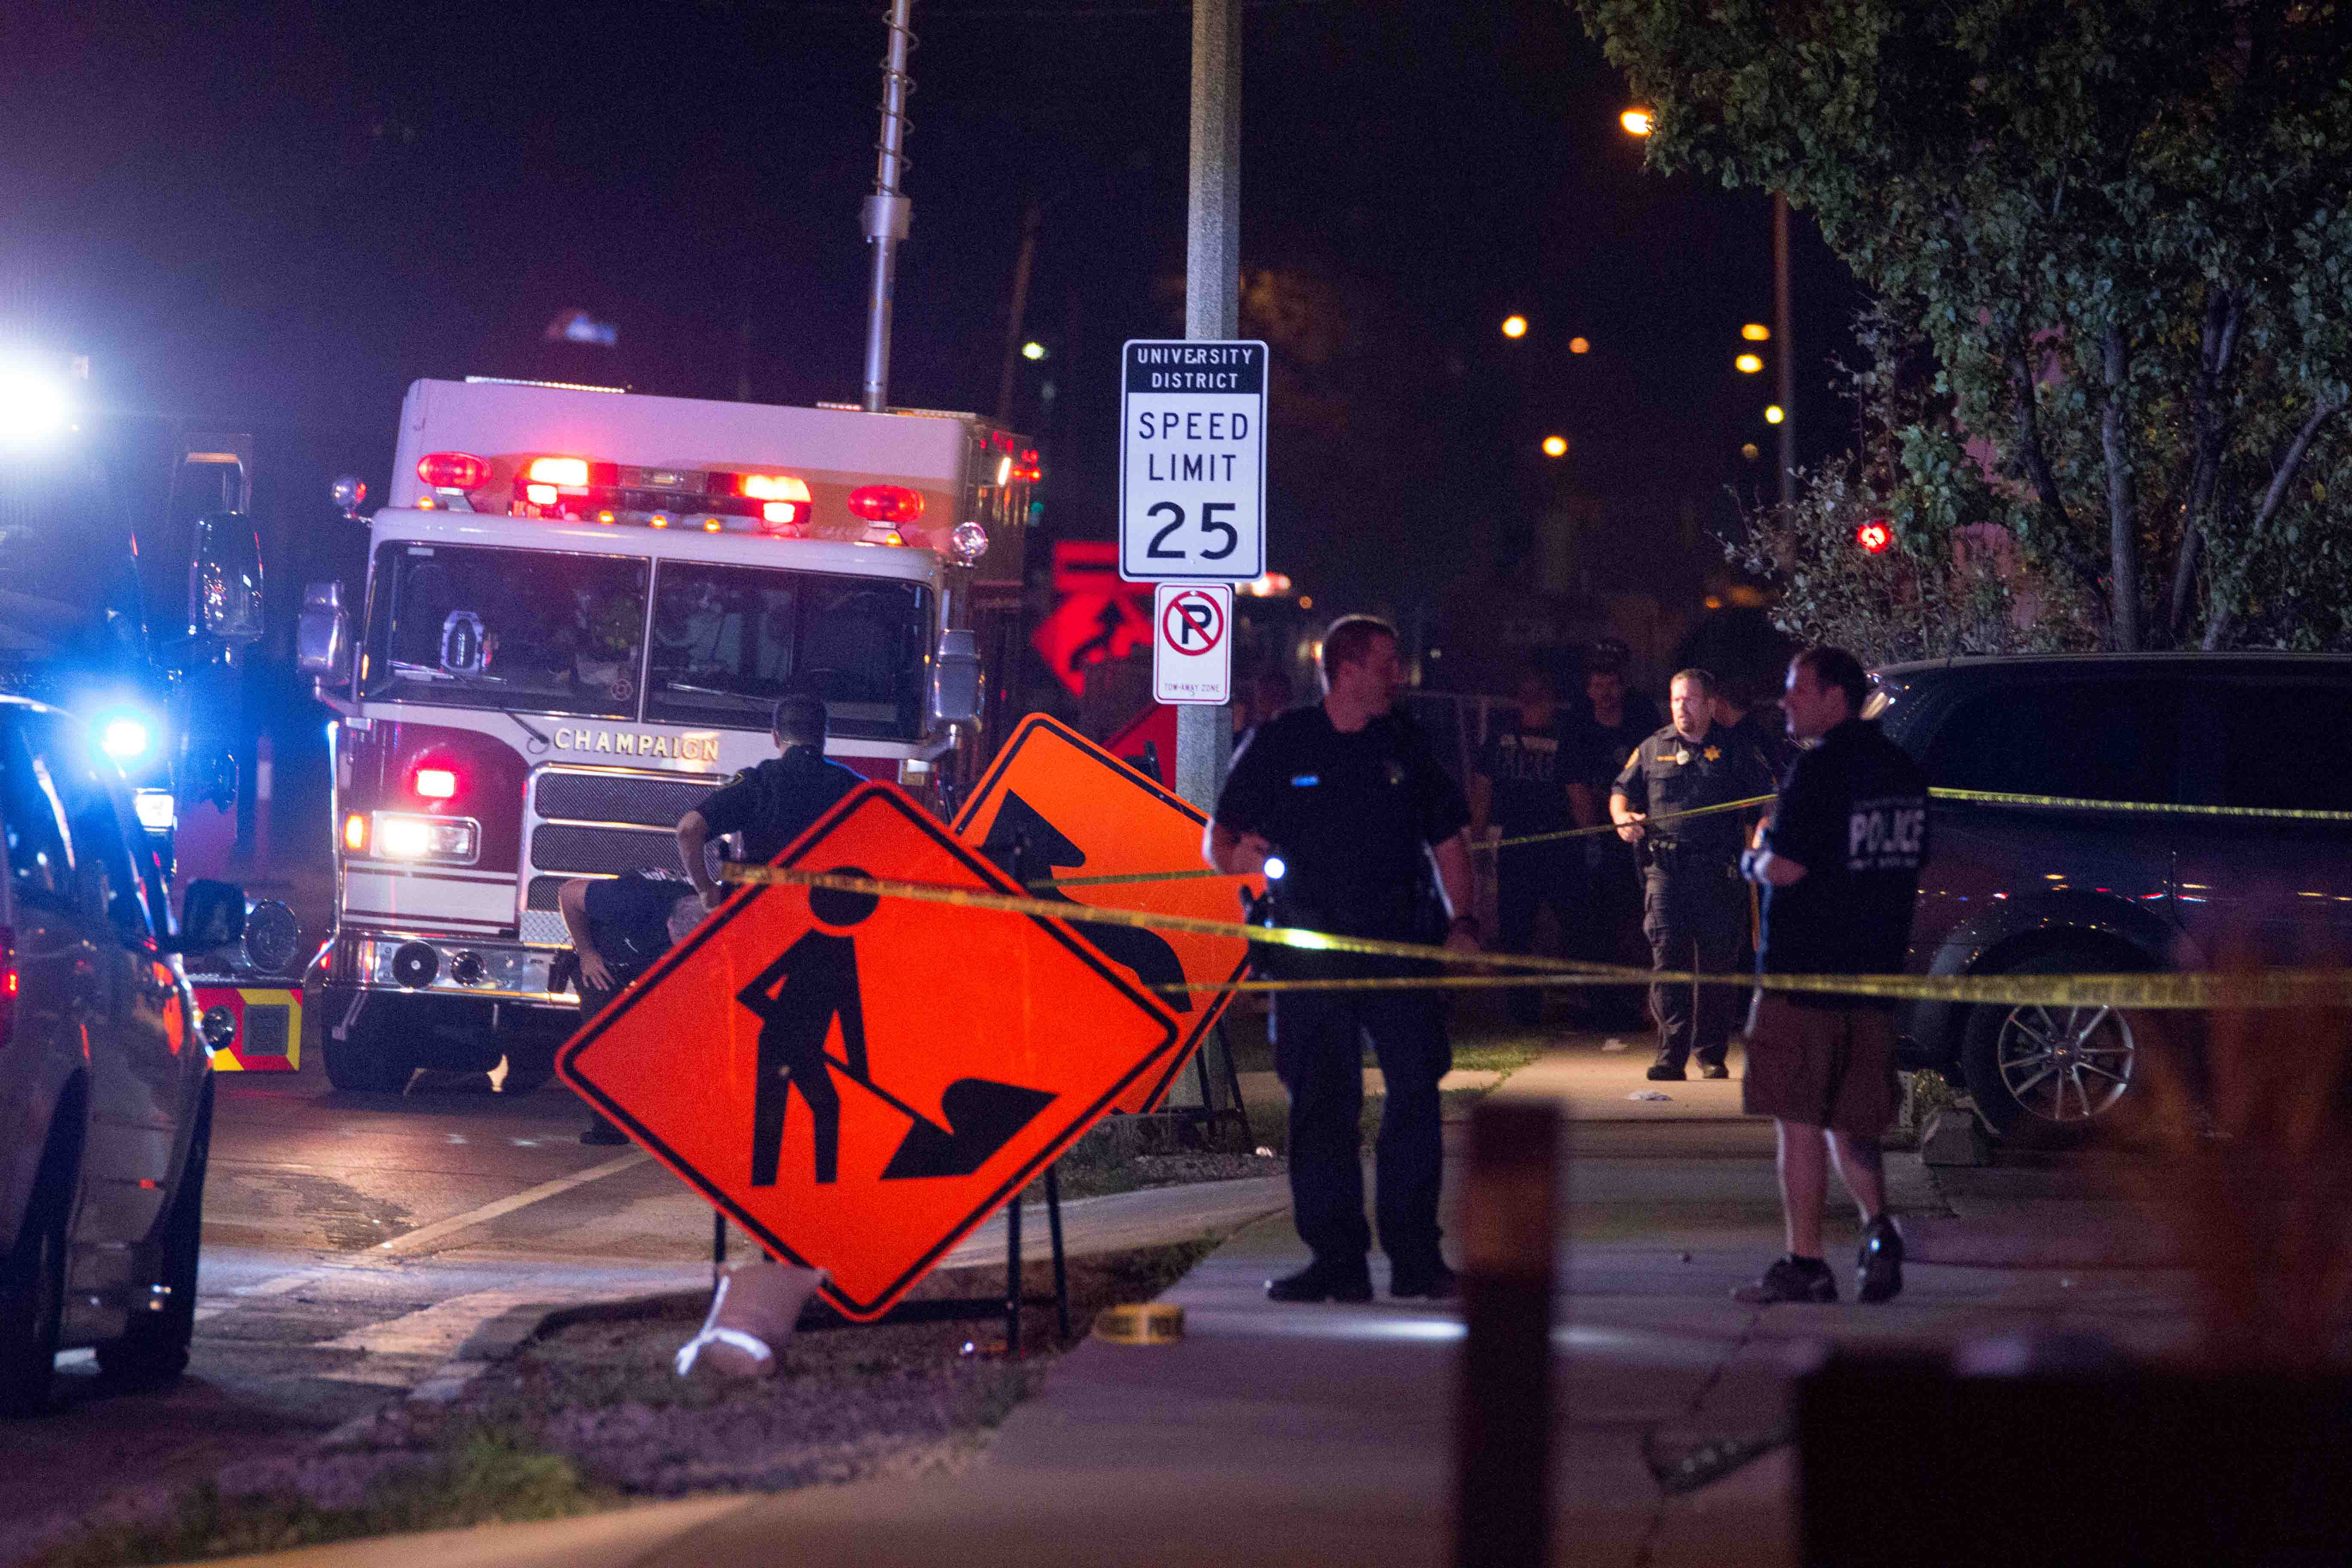 Police officers investigate what happened after a shooting that took place.